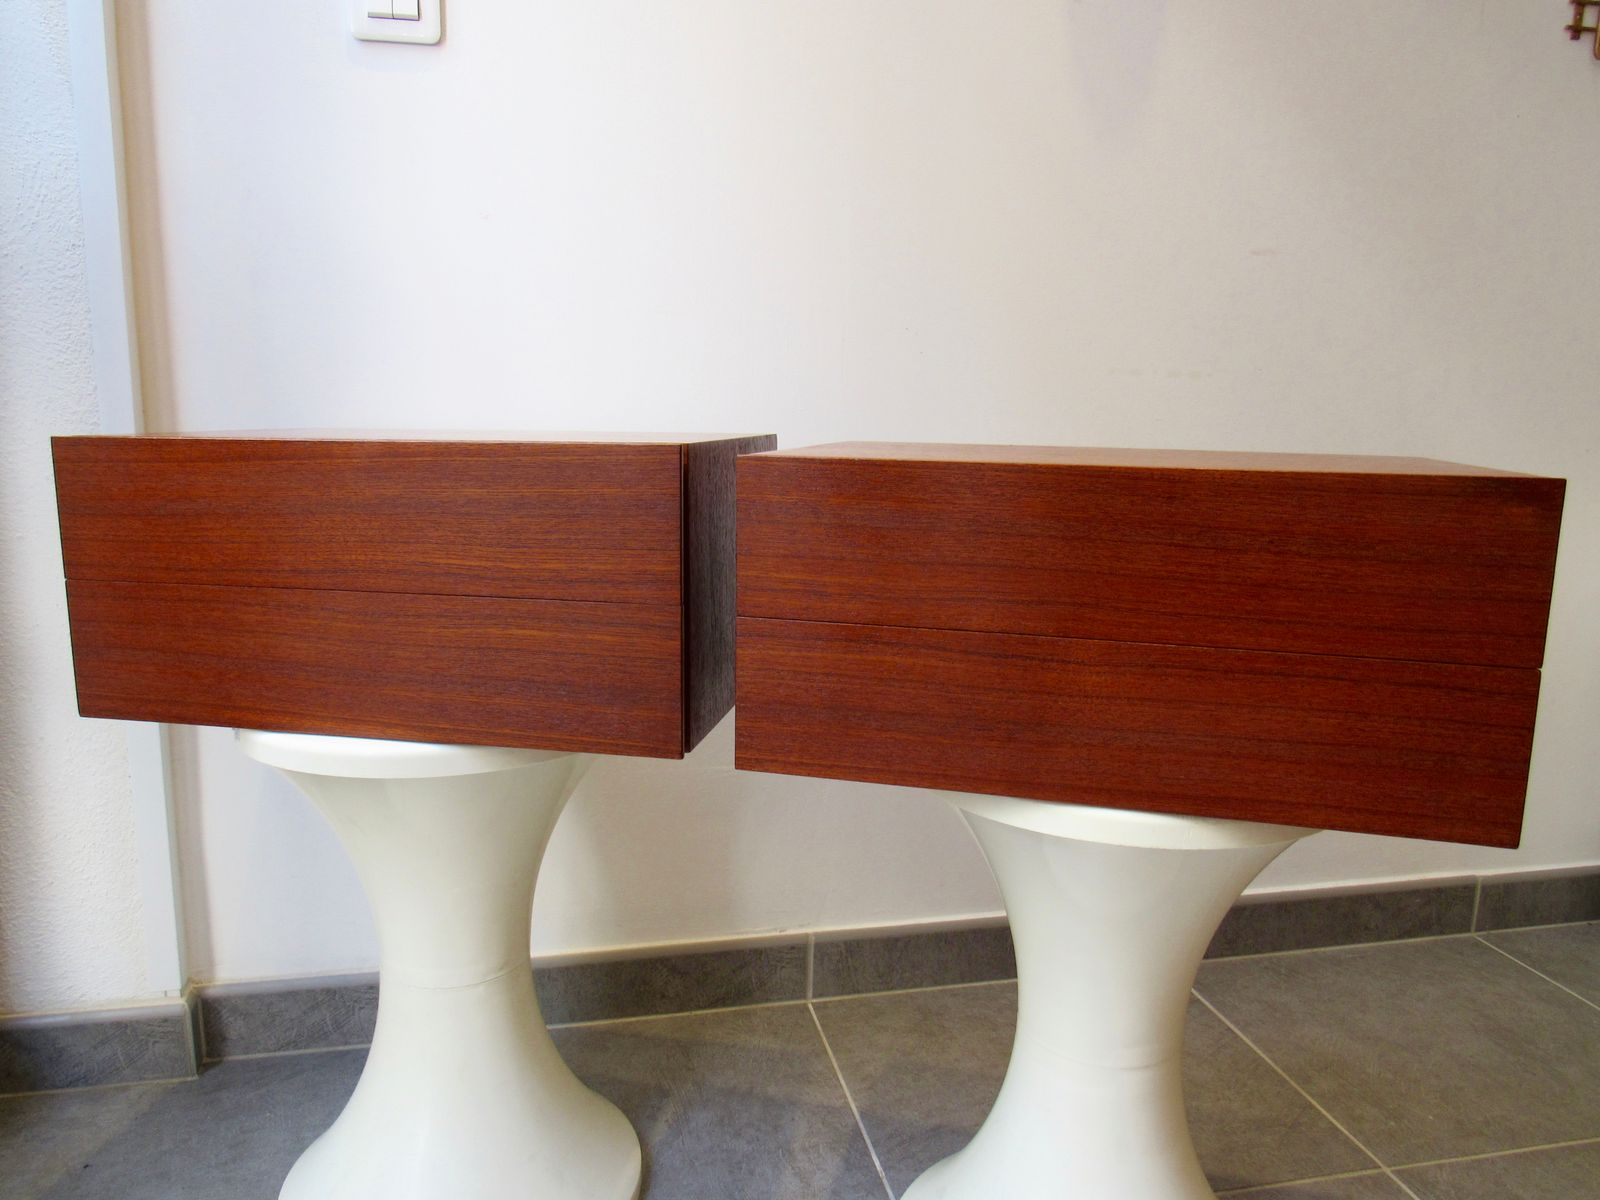 Wall Mounted Bedside Tables Teak Veneer Wall Mounted Bedside Tables 1960S Set Of 2 For Sale